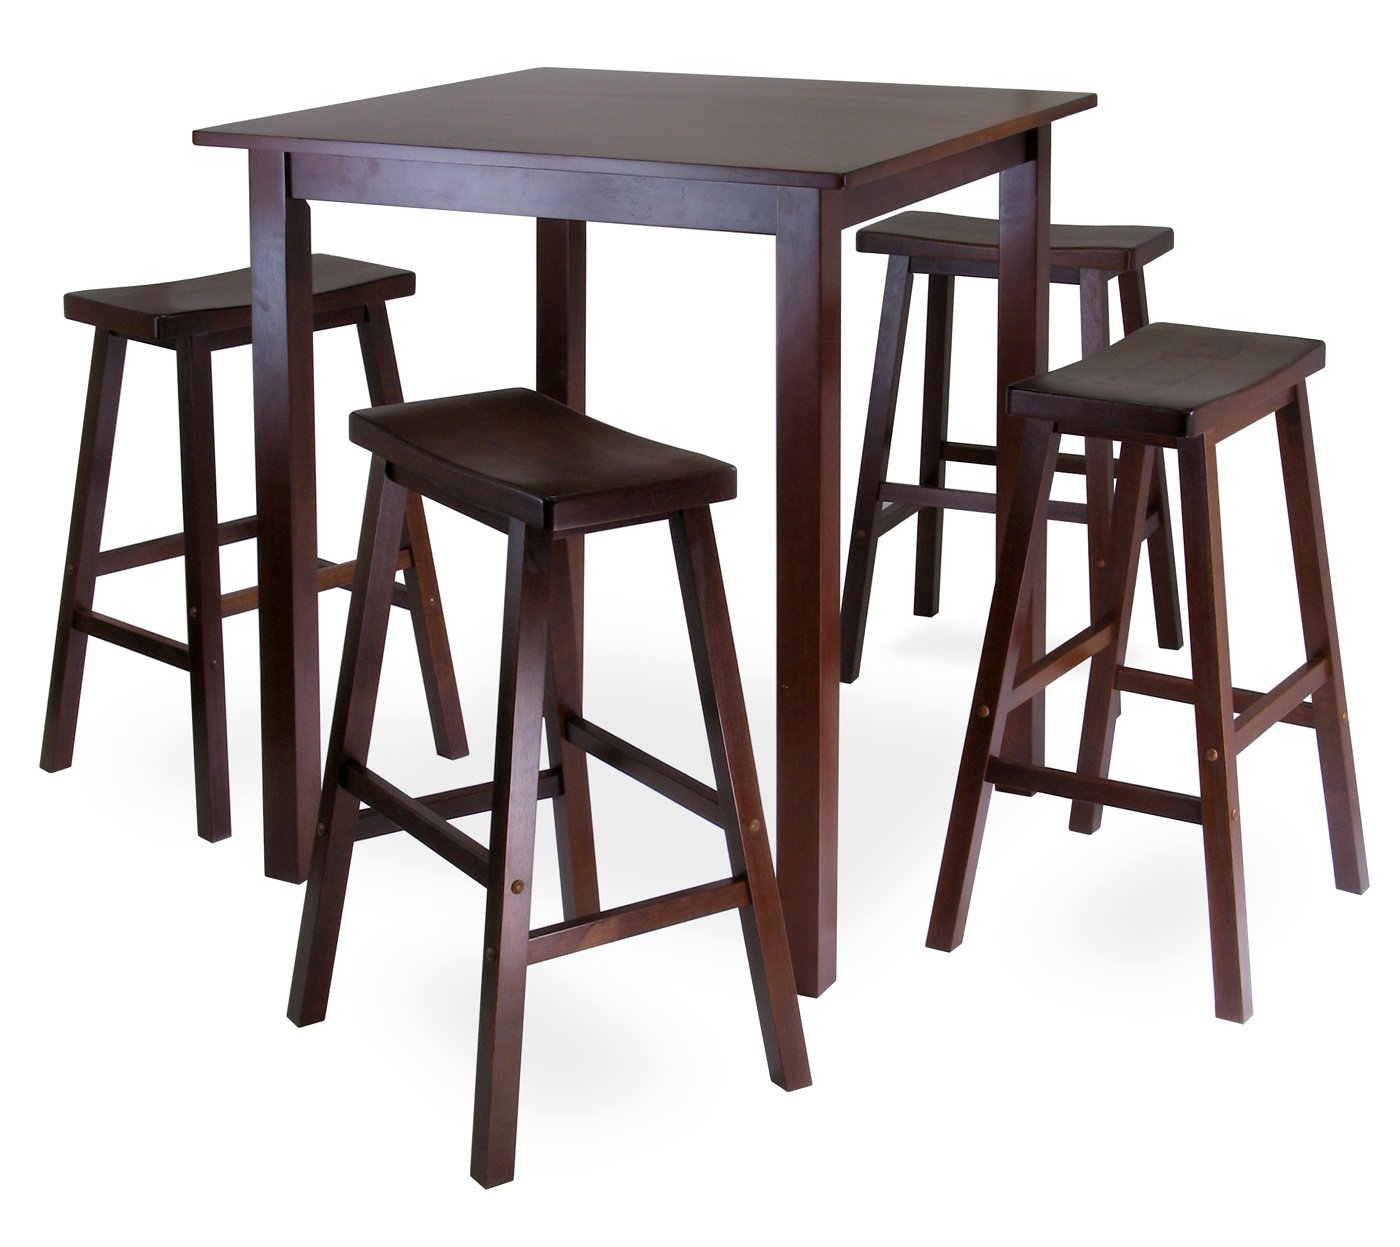 Amazing Best High Top Tables Ikea With Wooden Style And Four Chairs